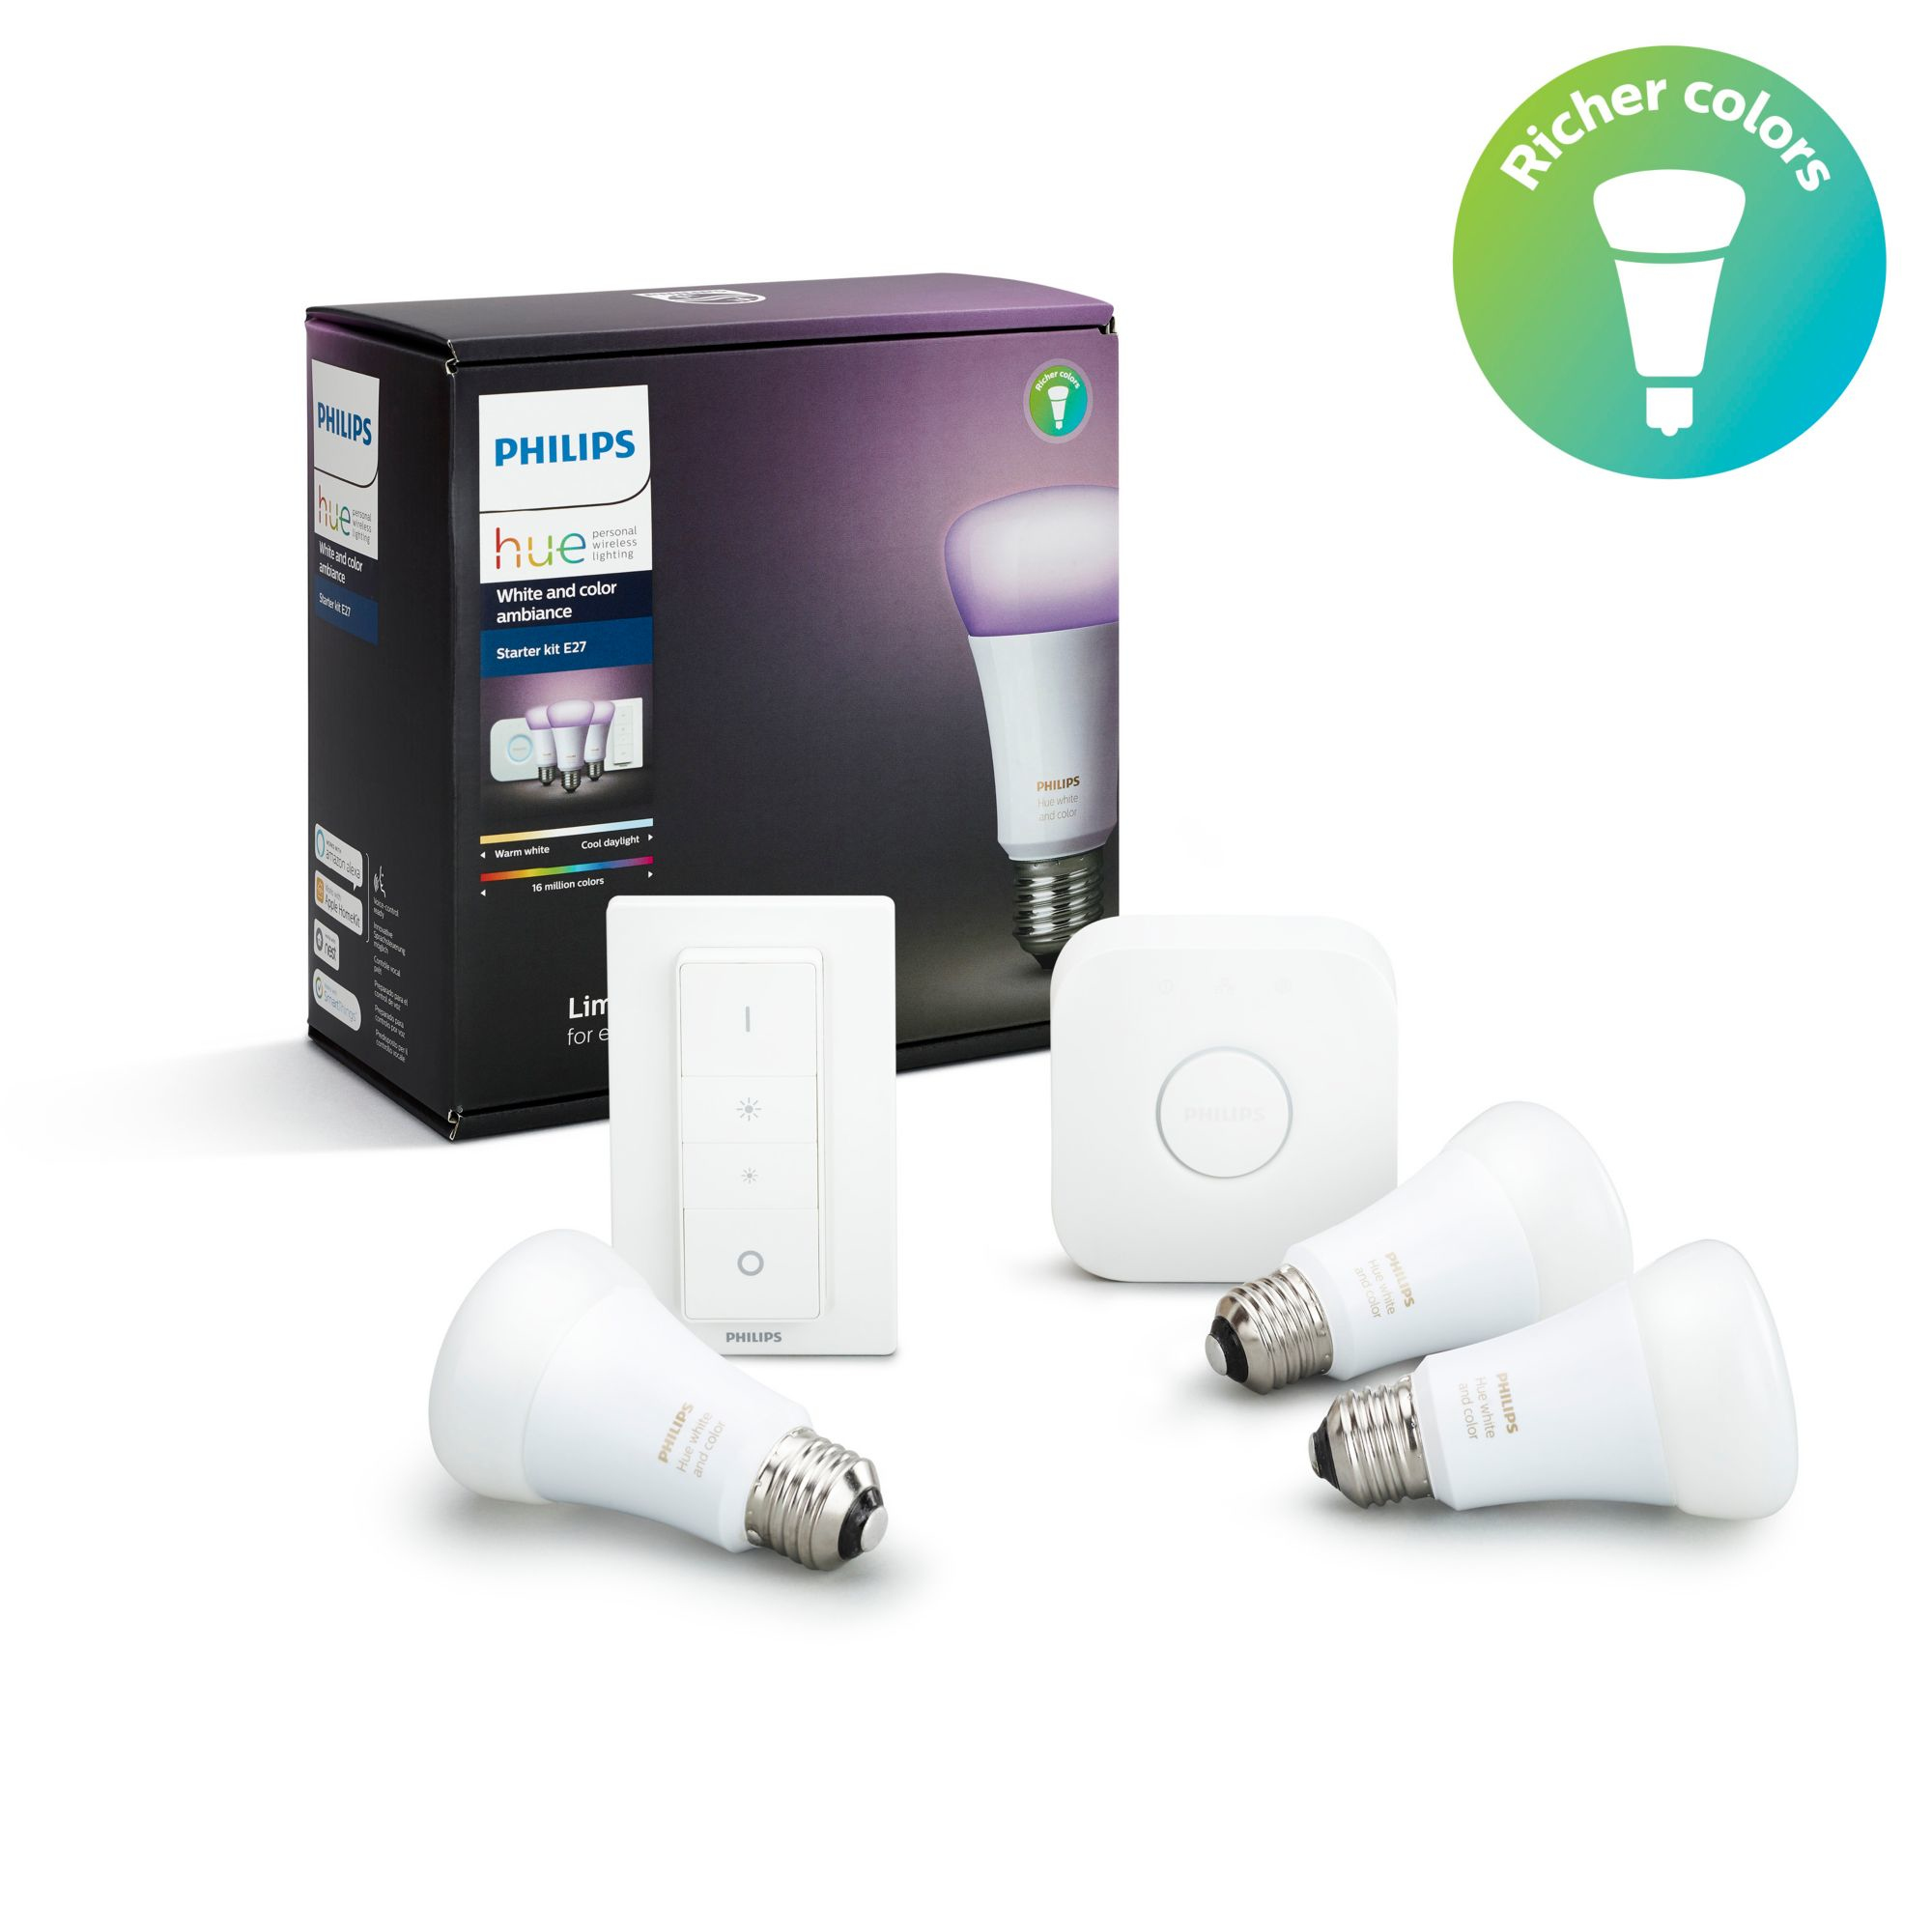 Philips by Signify hue White and Color Ambiance Starter Kit E27 LED-Lampen 10W für 159,00 Euro